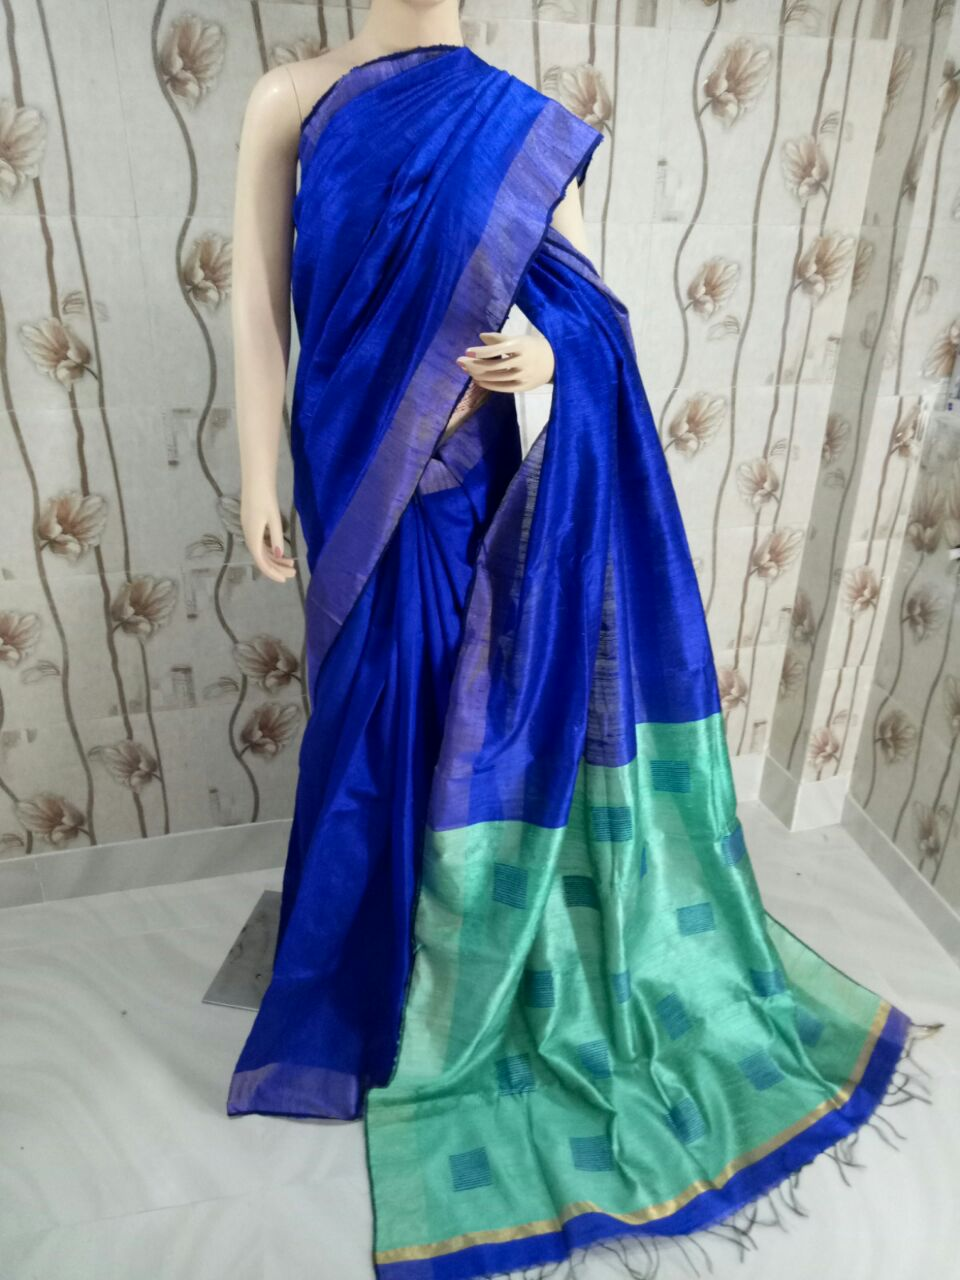 c5a359b6f220ee Ink Blue Pure Handloom Dupion Raw Silk Saree for Online Shopping ...